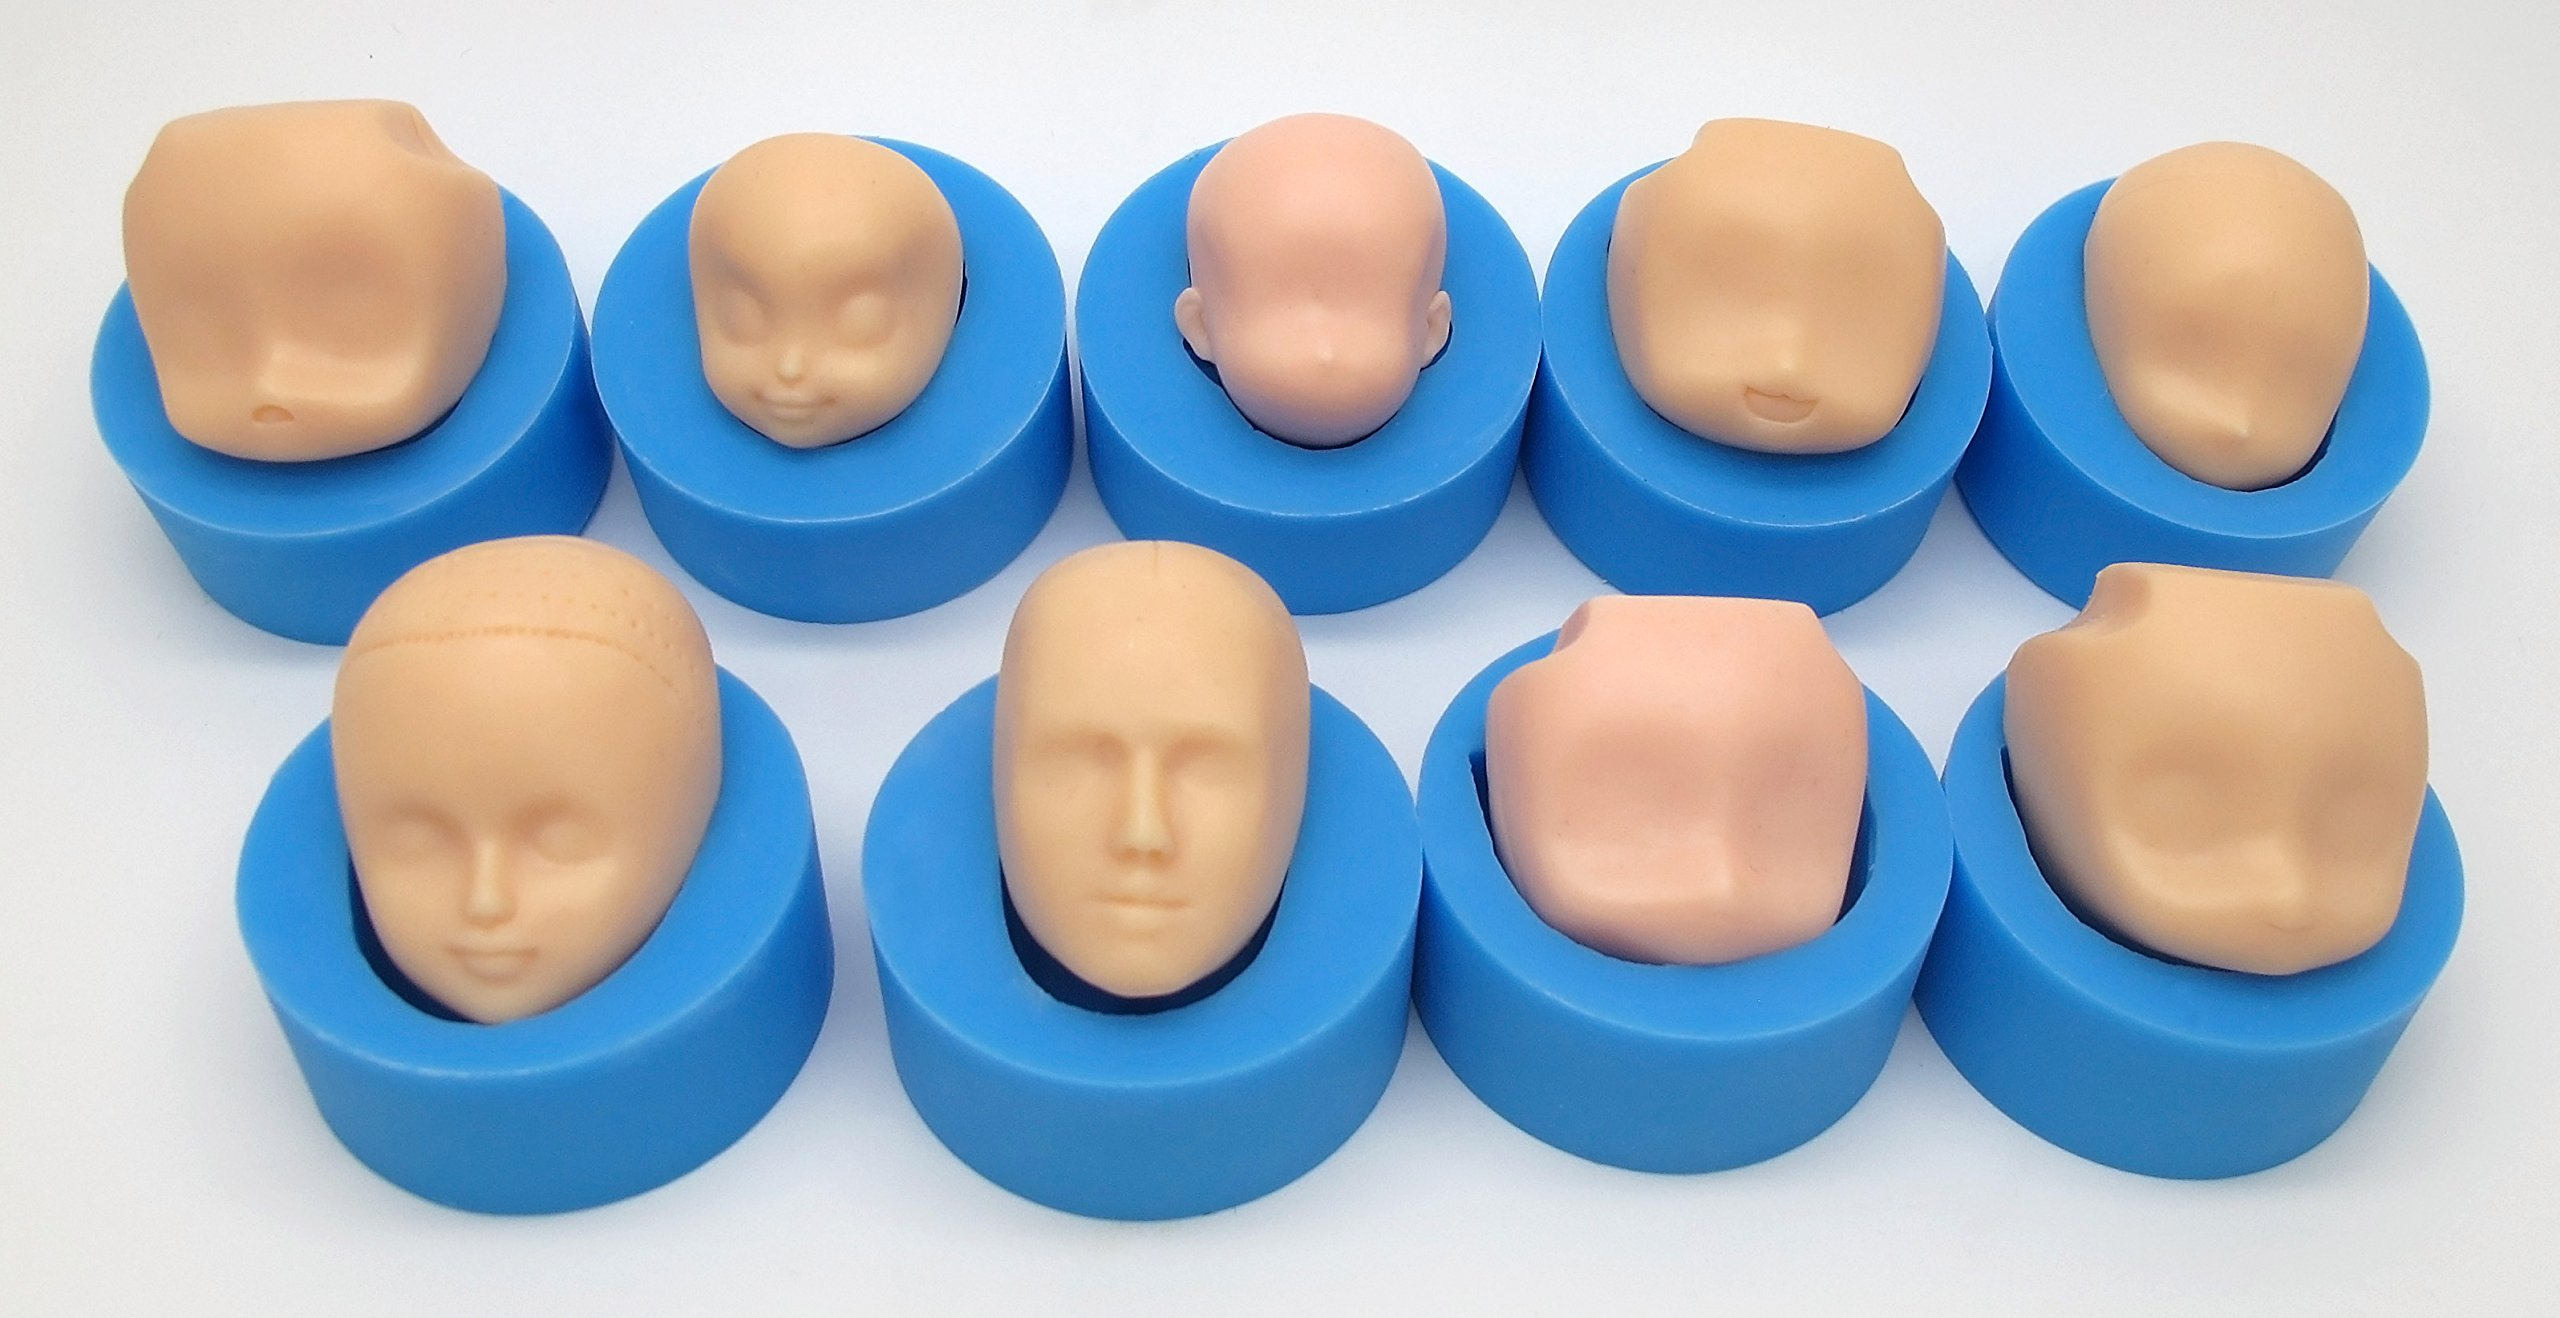 mofa 9 PCS of Set Human Face Shaped 3D Silicone Cake Fondant Mold, Cake Decoration Tools, Soap, Candle Moulds,Fondant, Polymer Clay, Soap Making, Crafting Projects (Large Size) by mofa (Image #1)